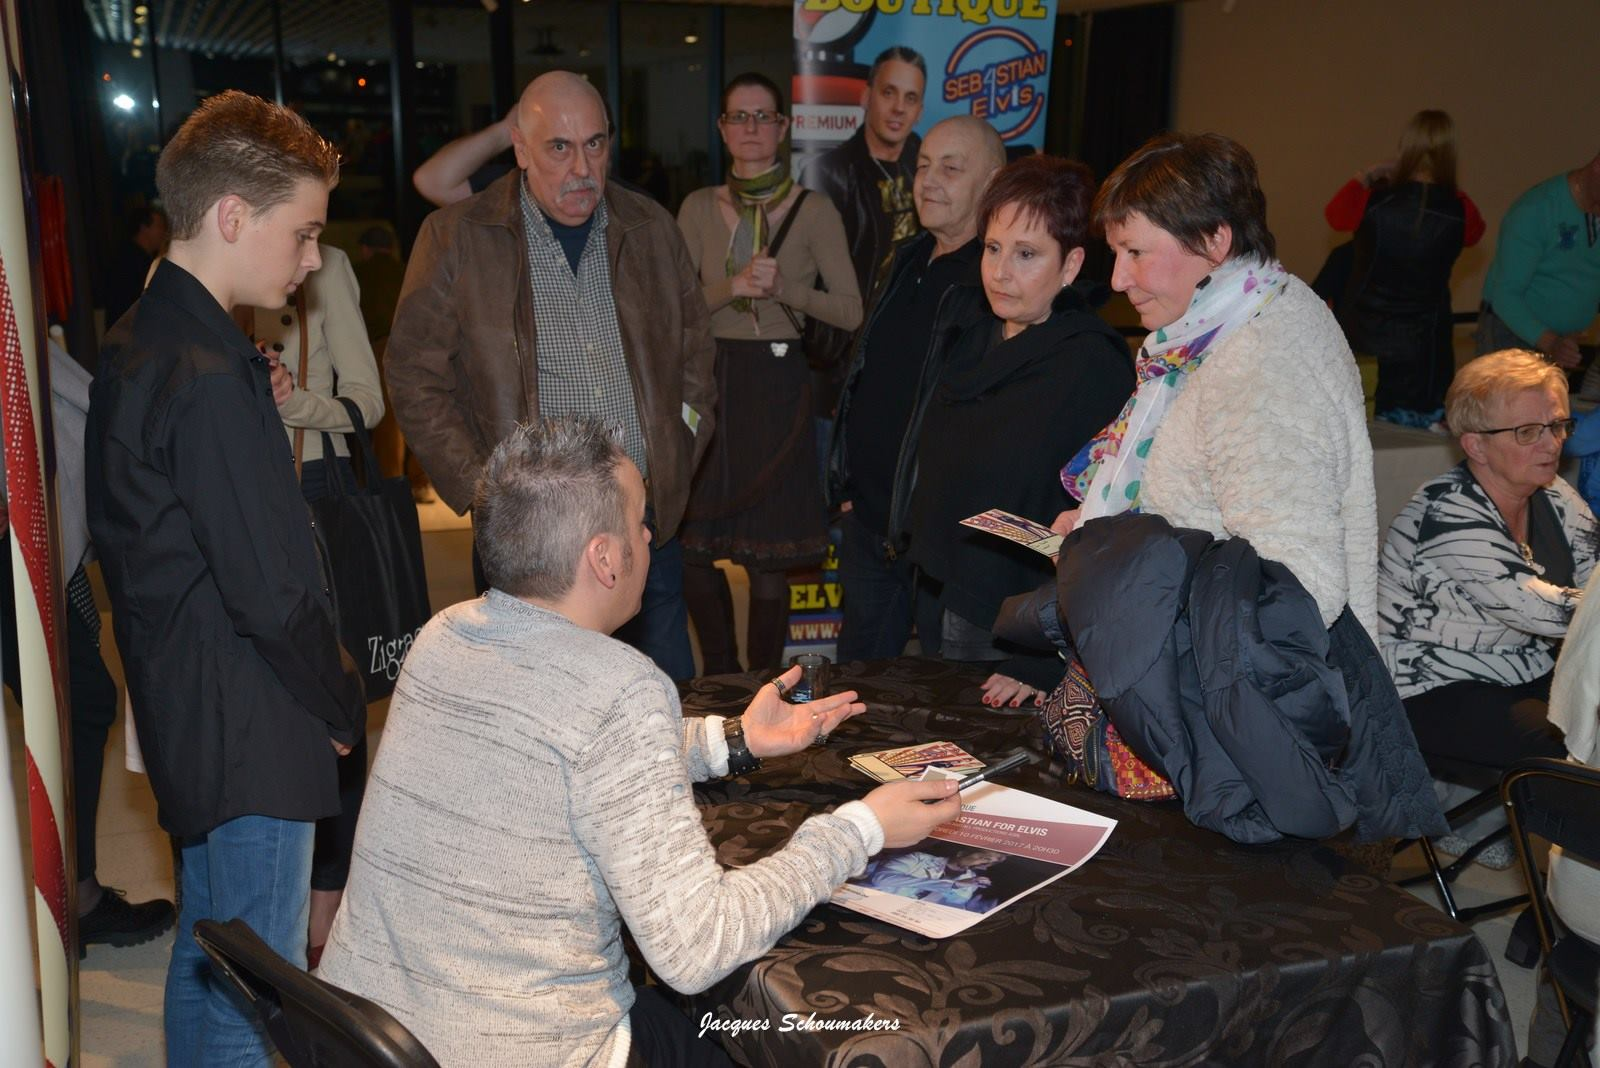 Sebastian-for-elvis-centre-culturel-andenne-jacques-schoumakers-facebook-619